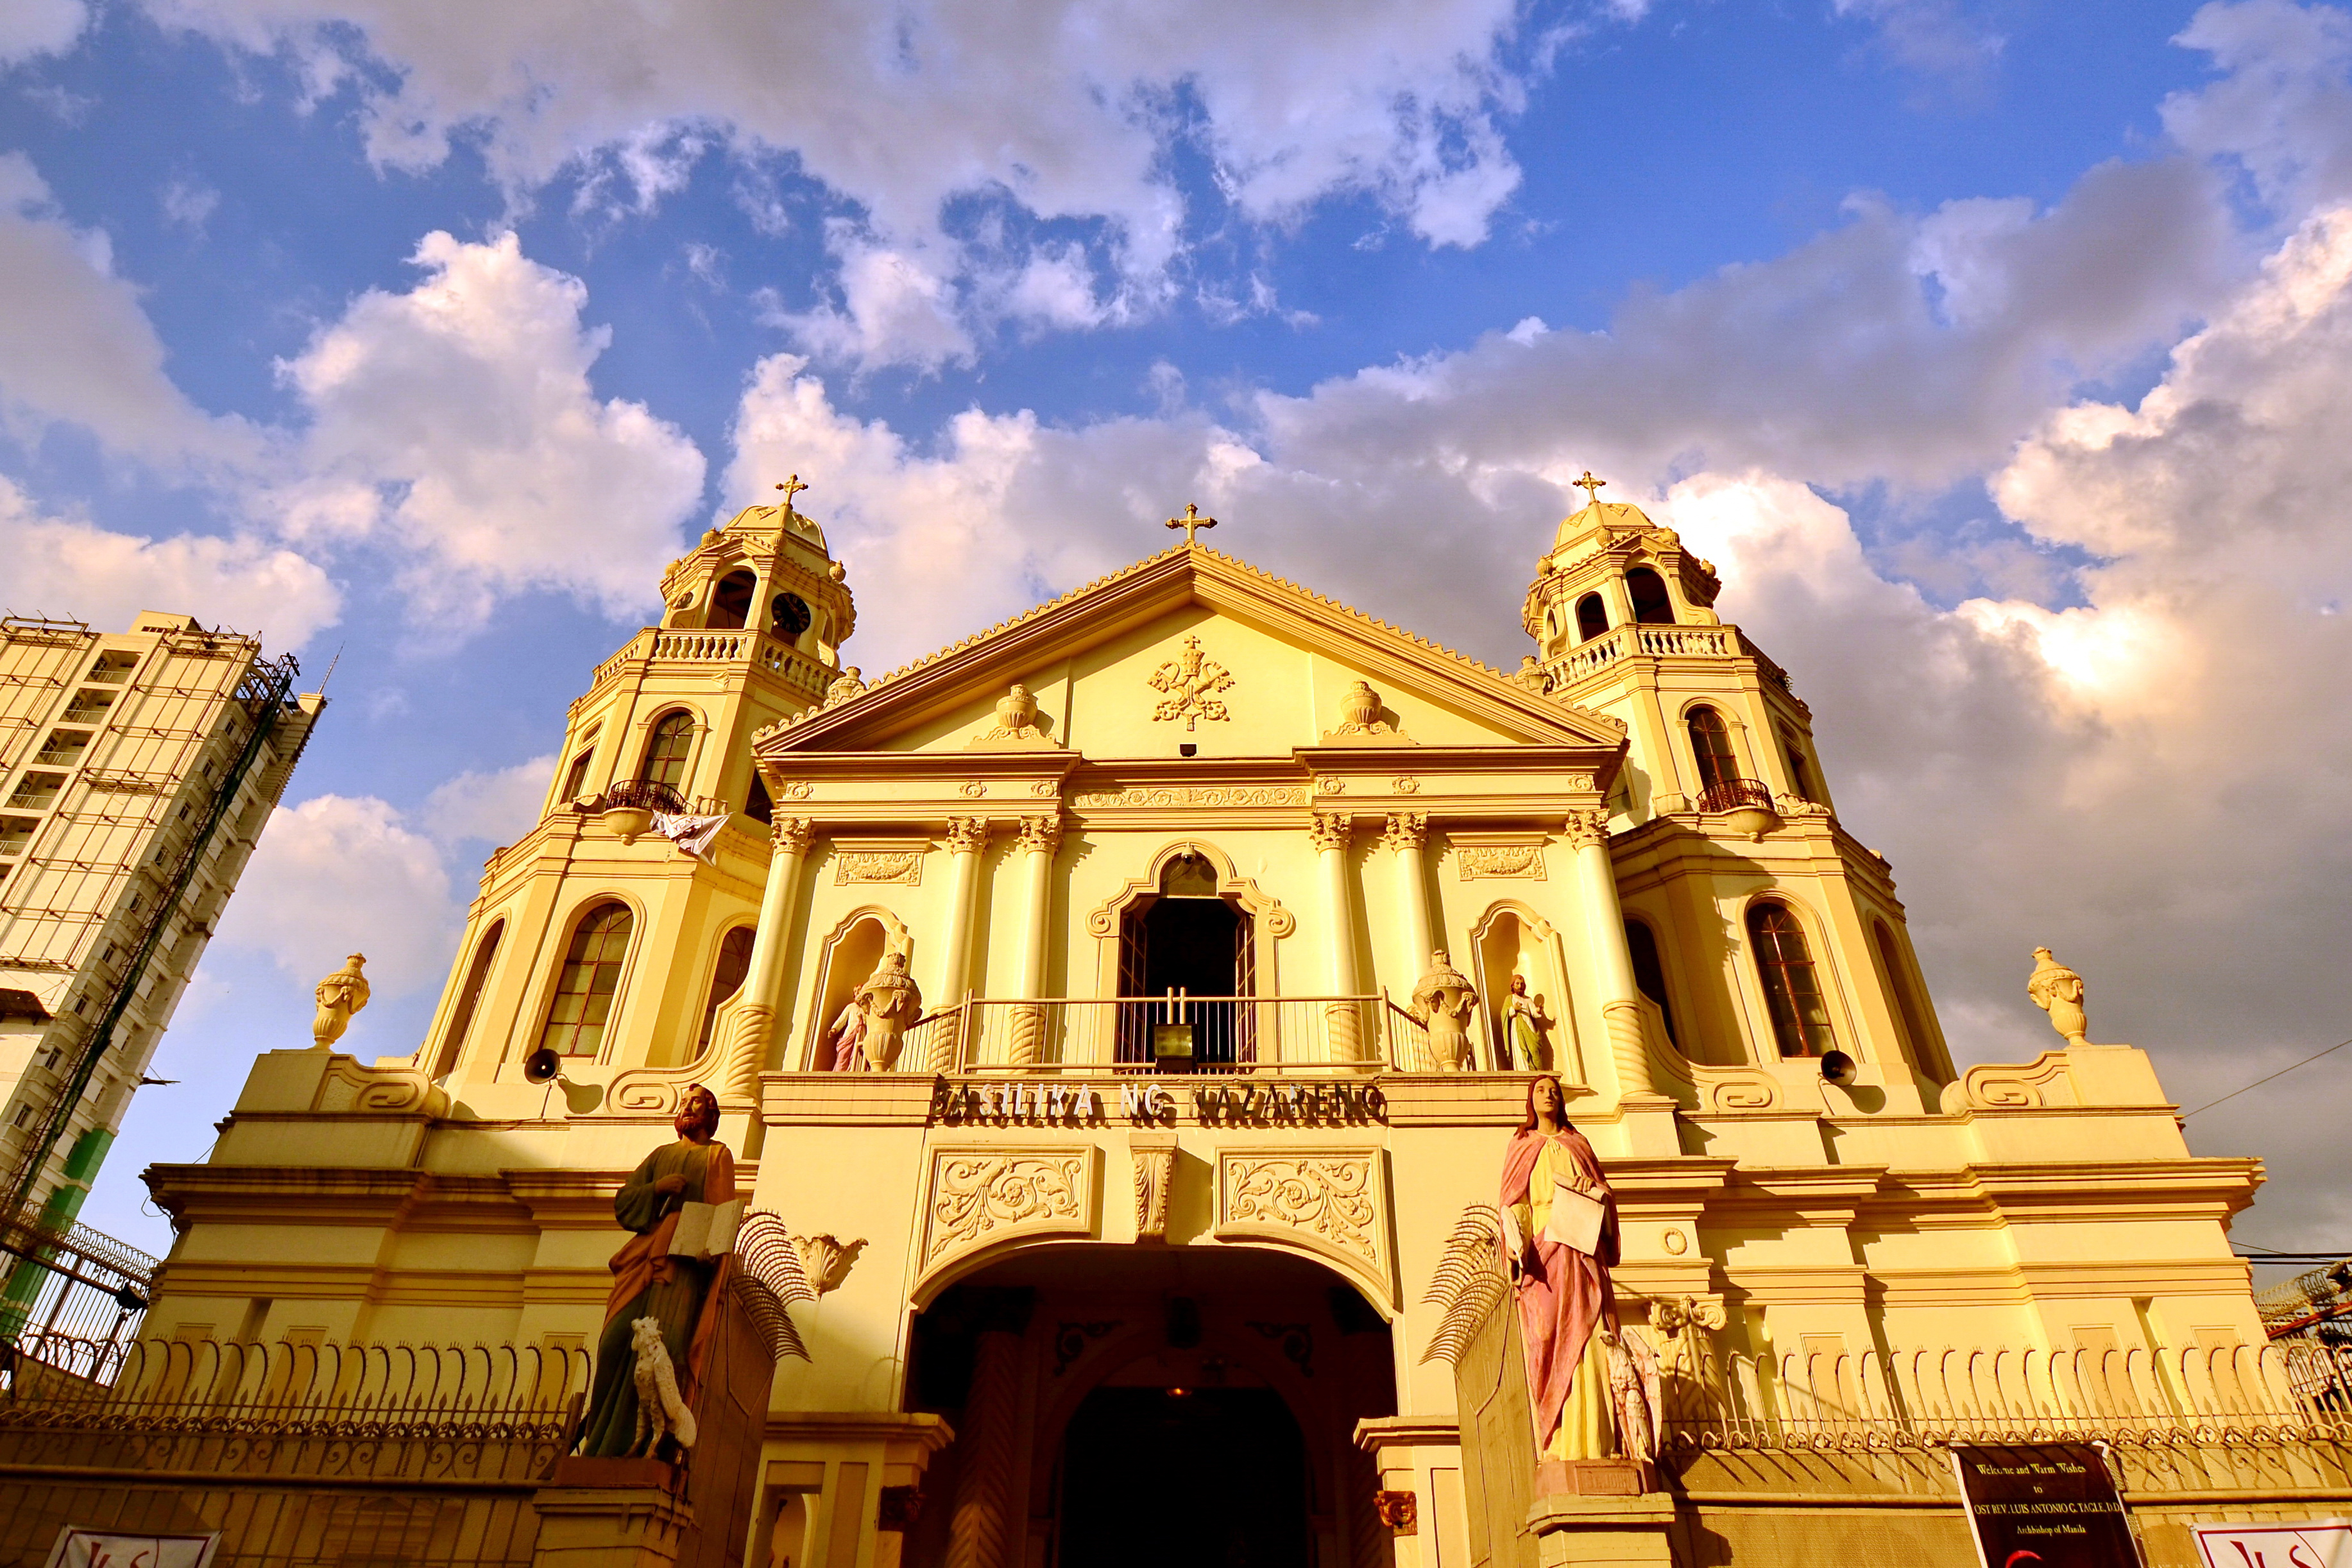 quiapo Quiapo has everything you could ever need if you want to see a real slice of life of filipino daily life and now it's on an easily accessible tour join us as we walk through alleyways and side street markets through the trading and bargaining mecca for the citizens of manila.